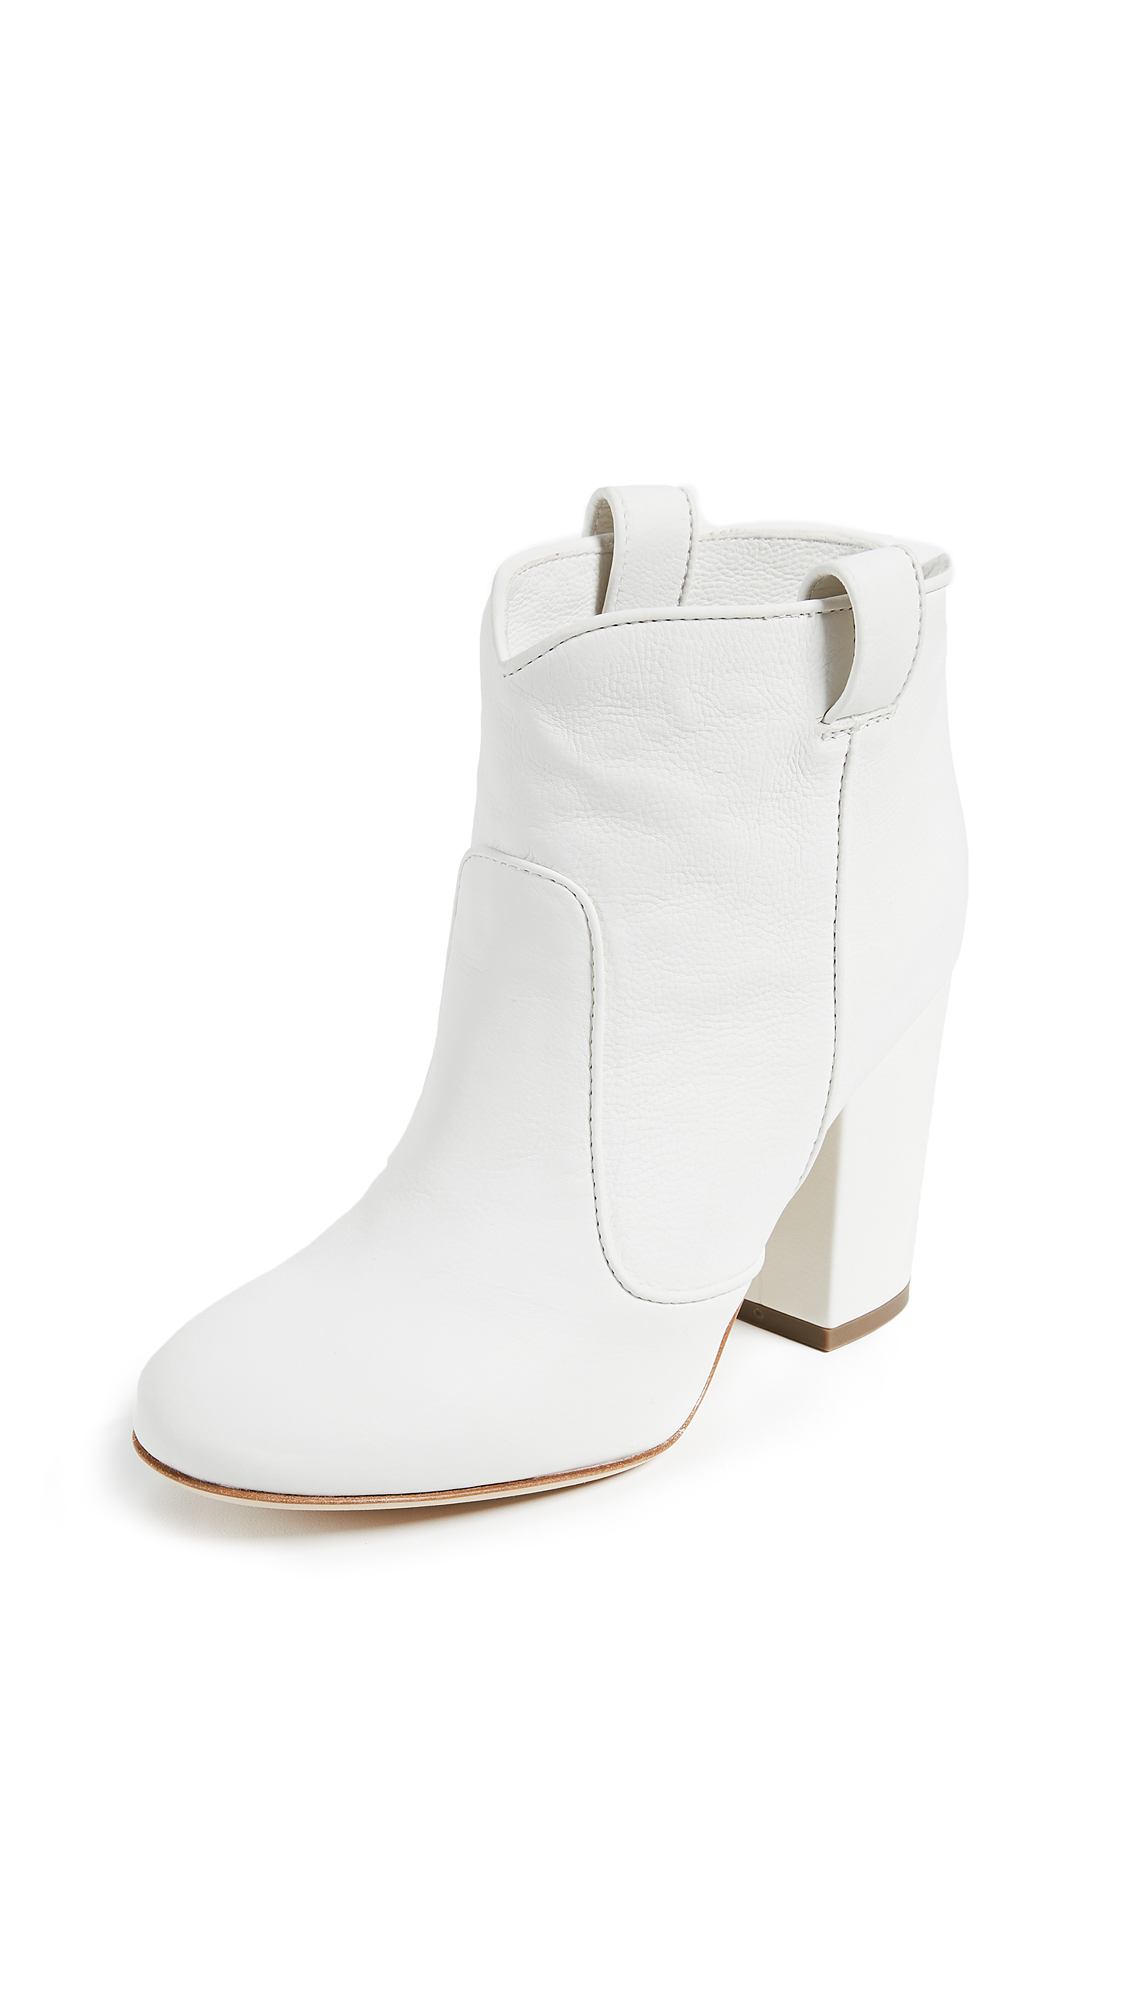 Laurence Dacade Pete Booties - Off White